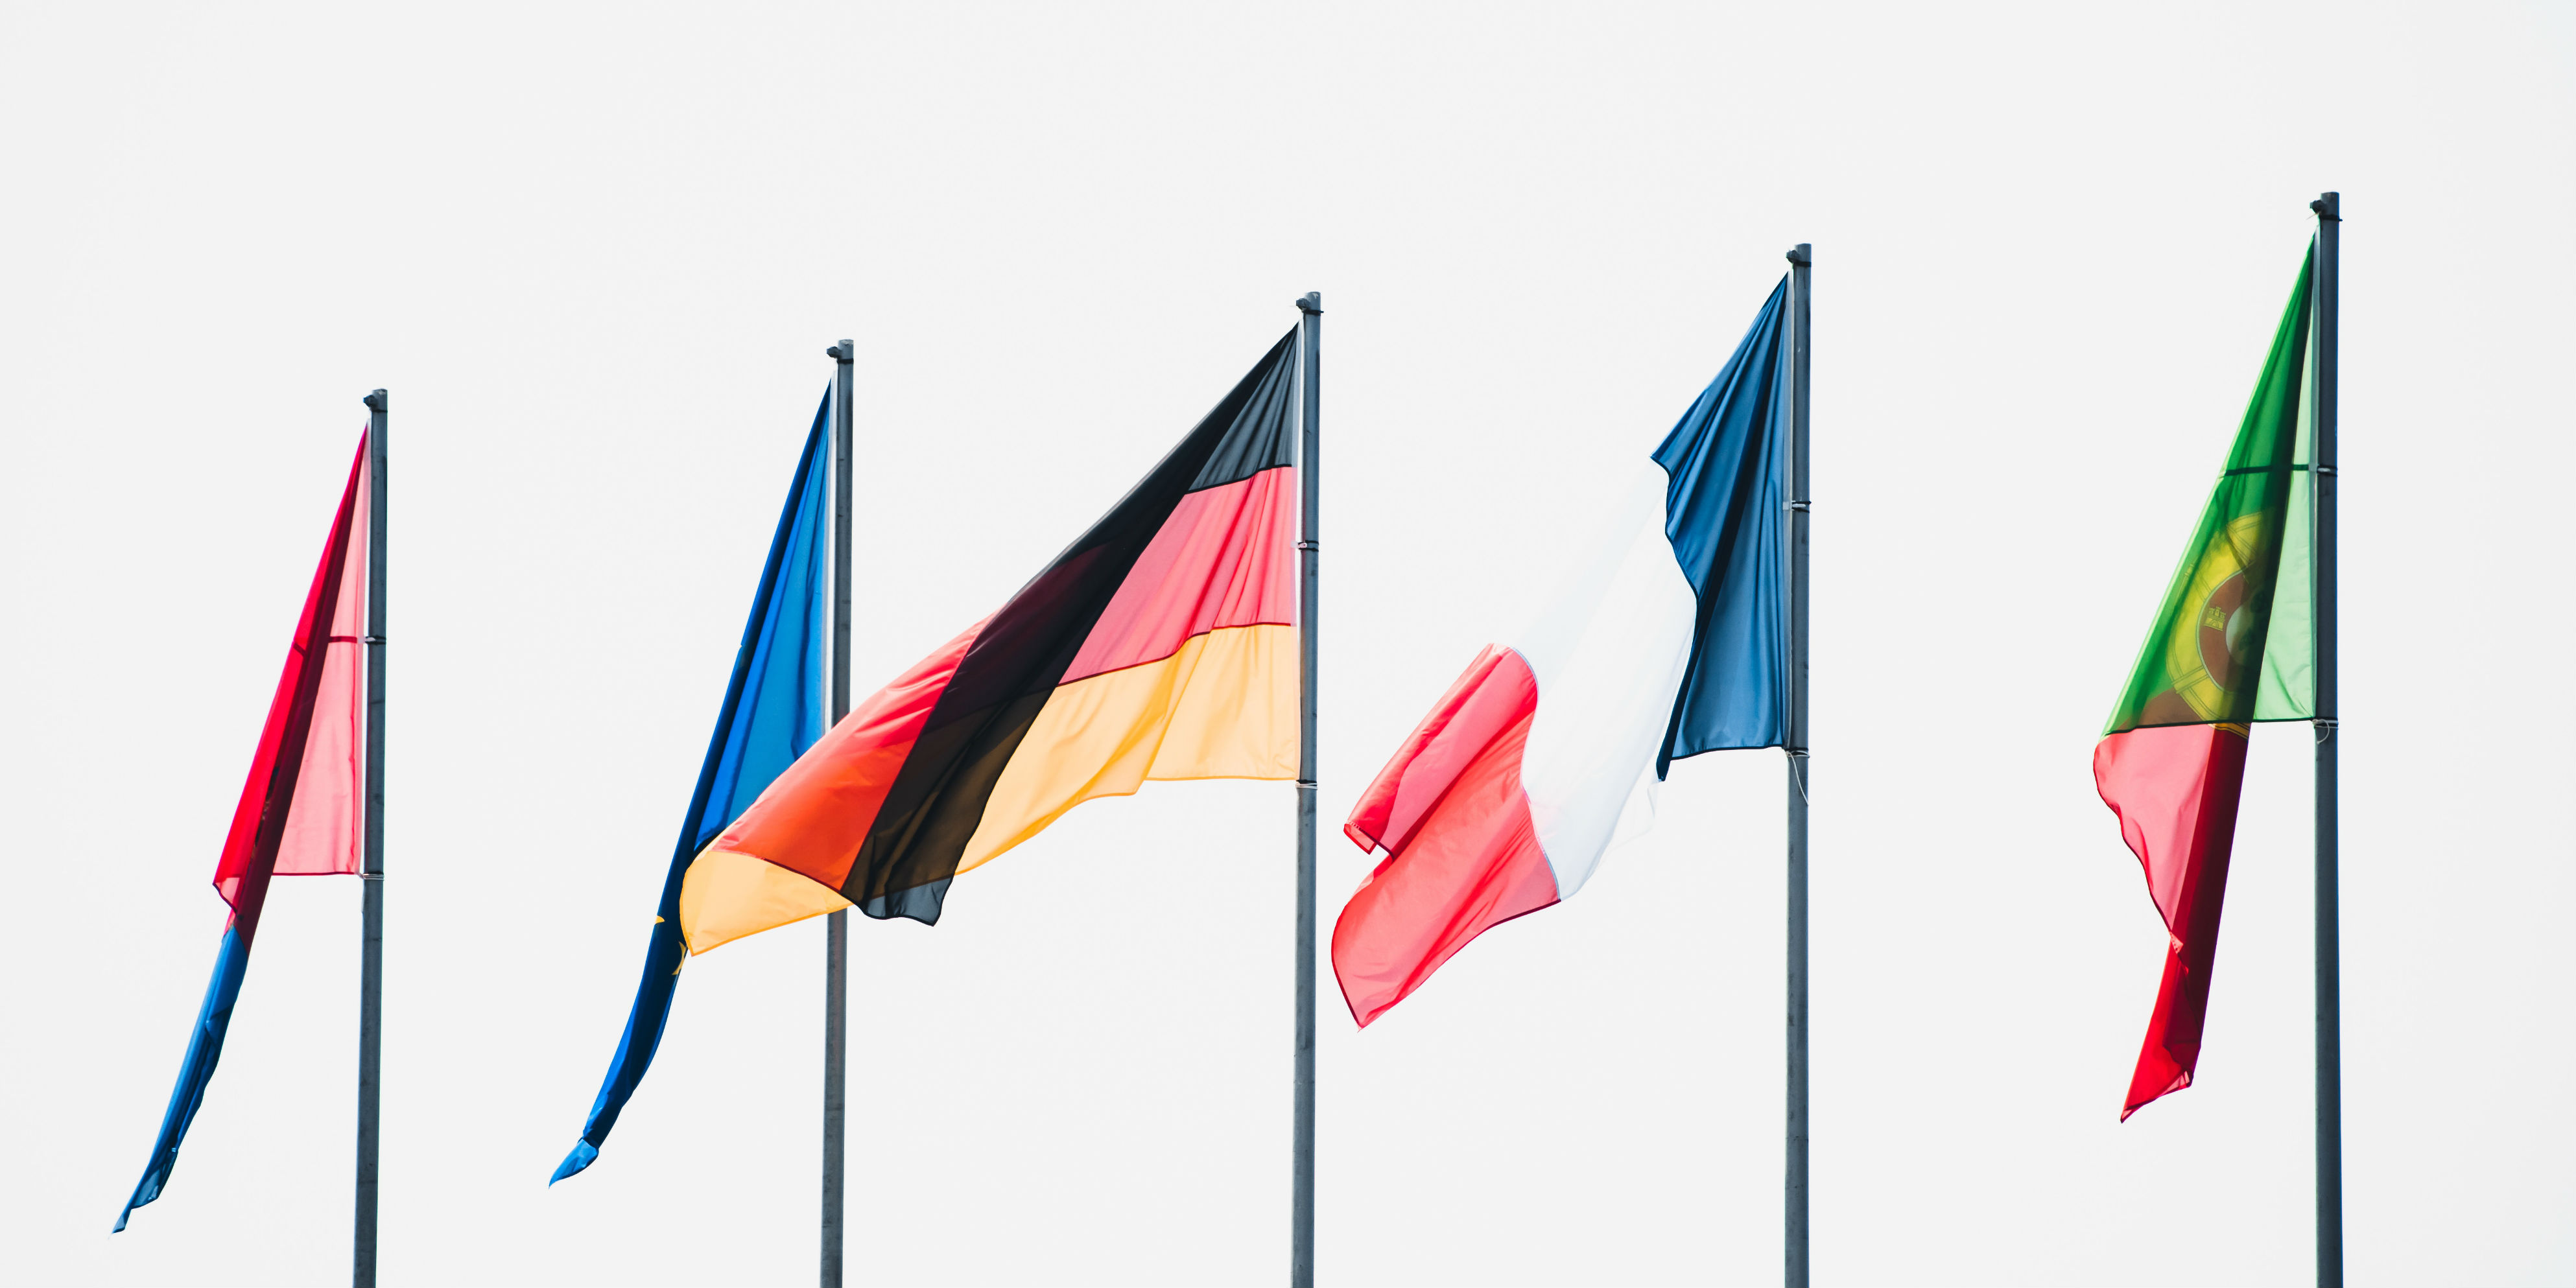 Flagpoles lined up, the German and French flags are visible and slightly waving in the wind